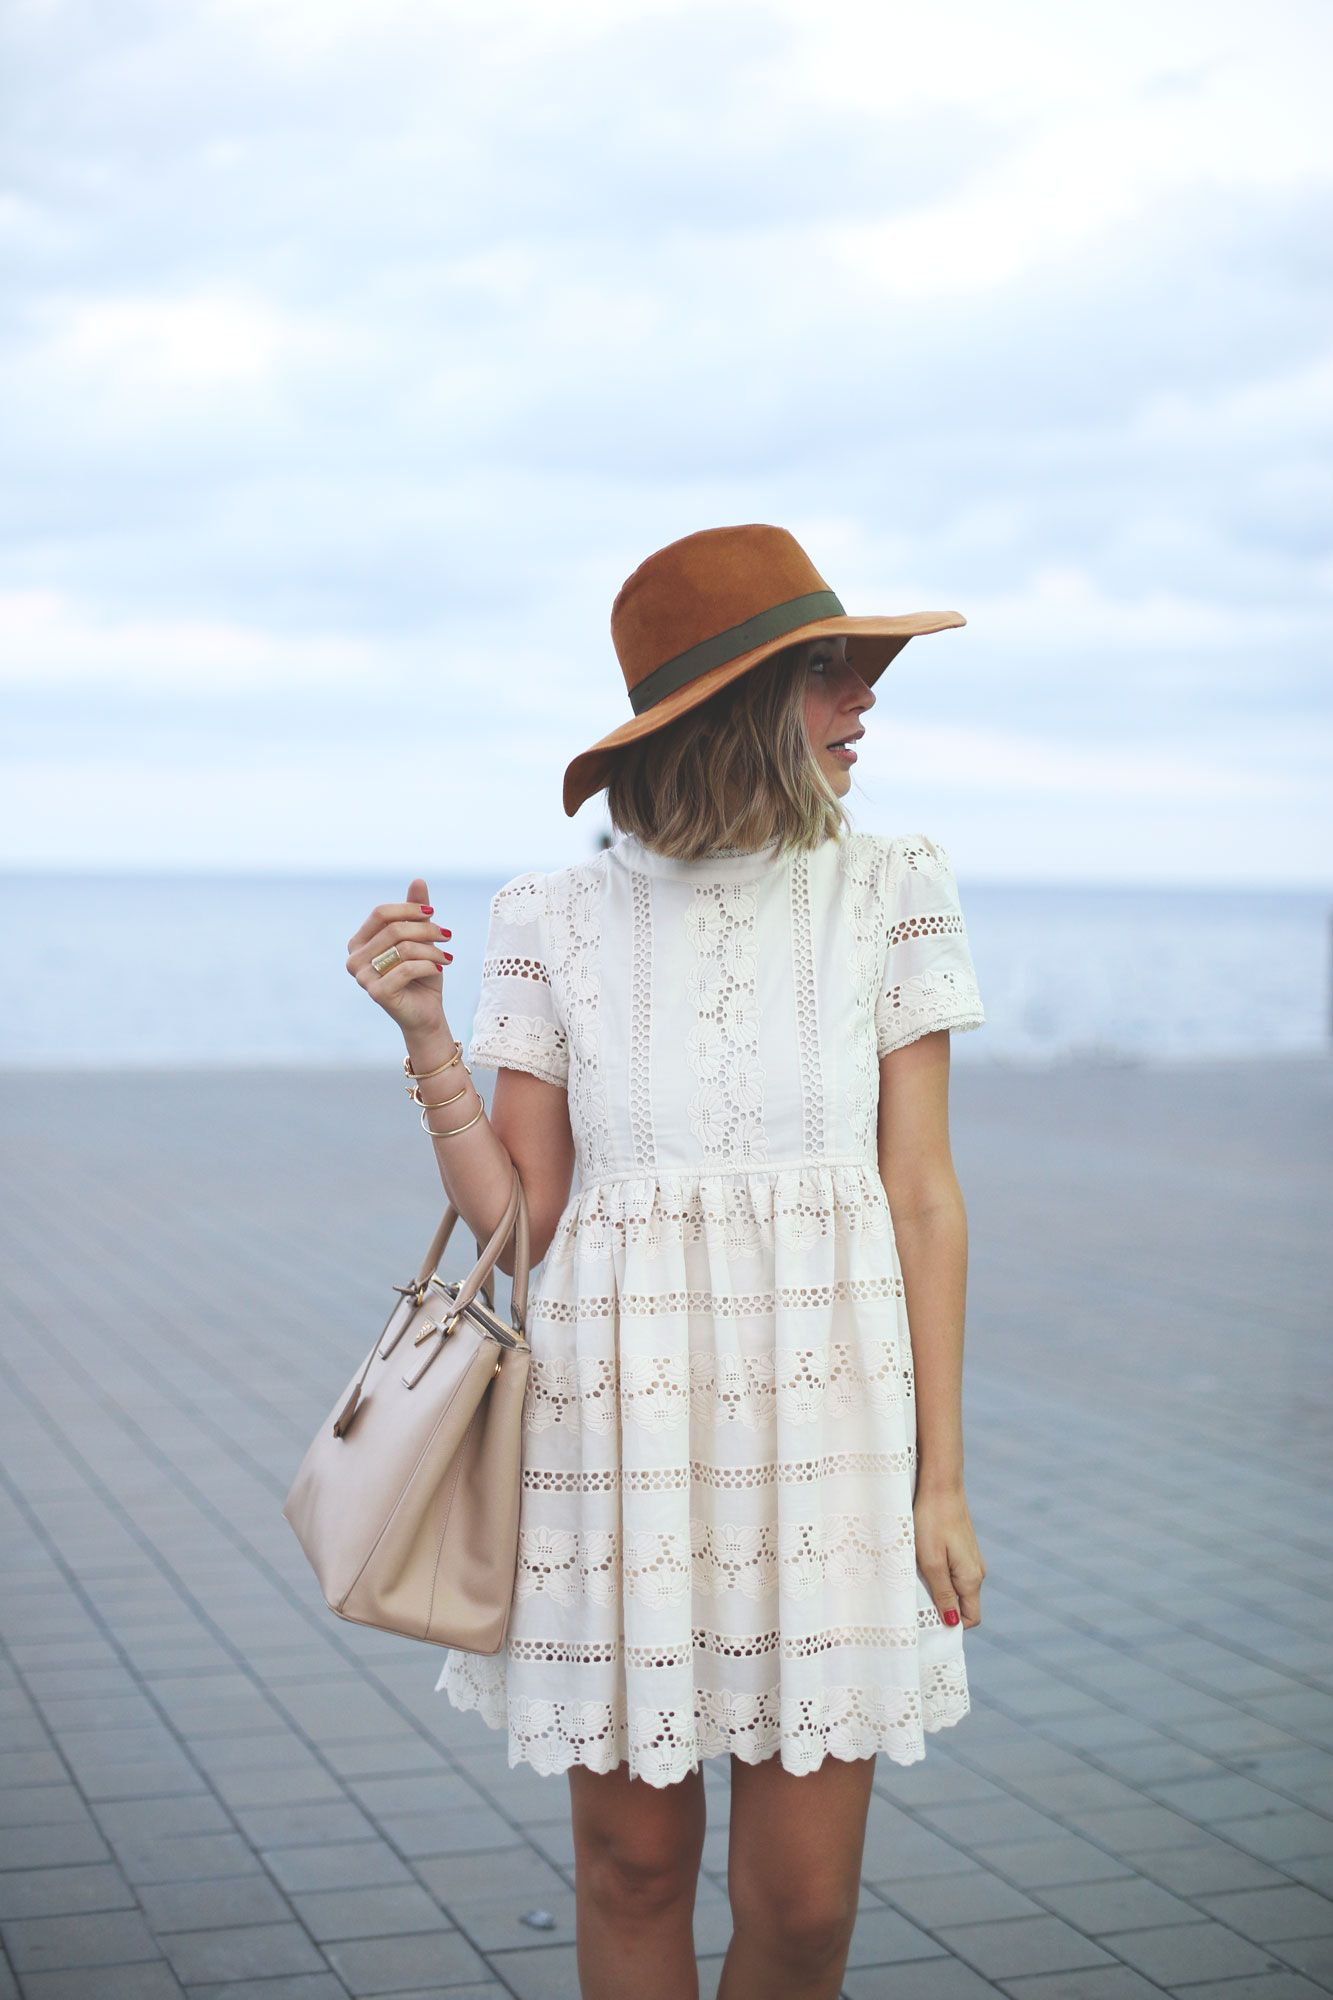 style tips making the outfit better